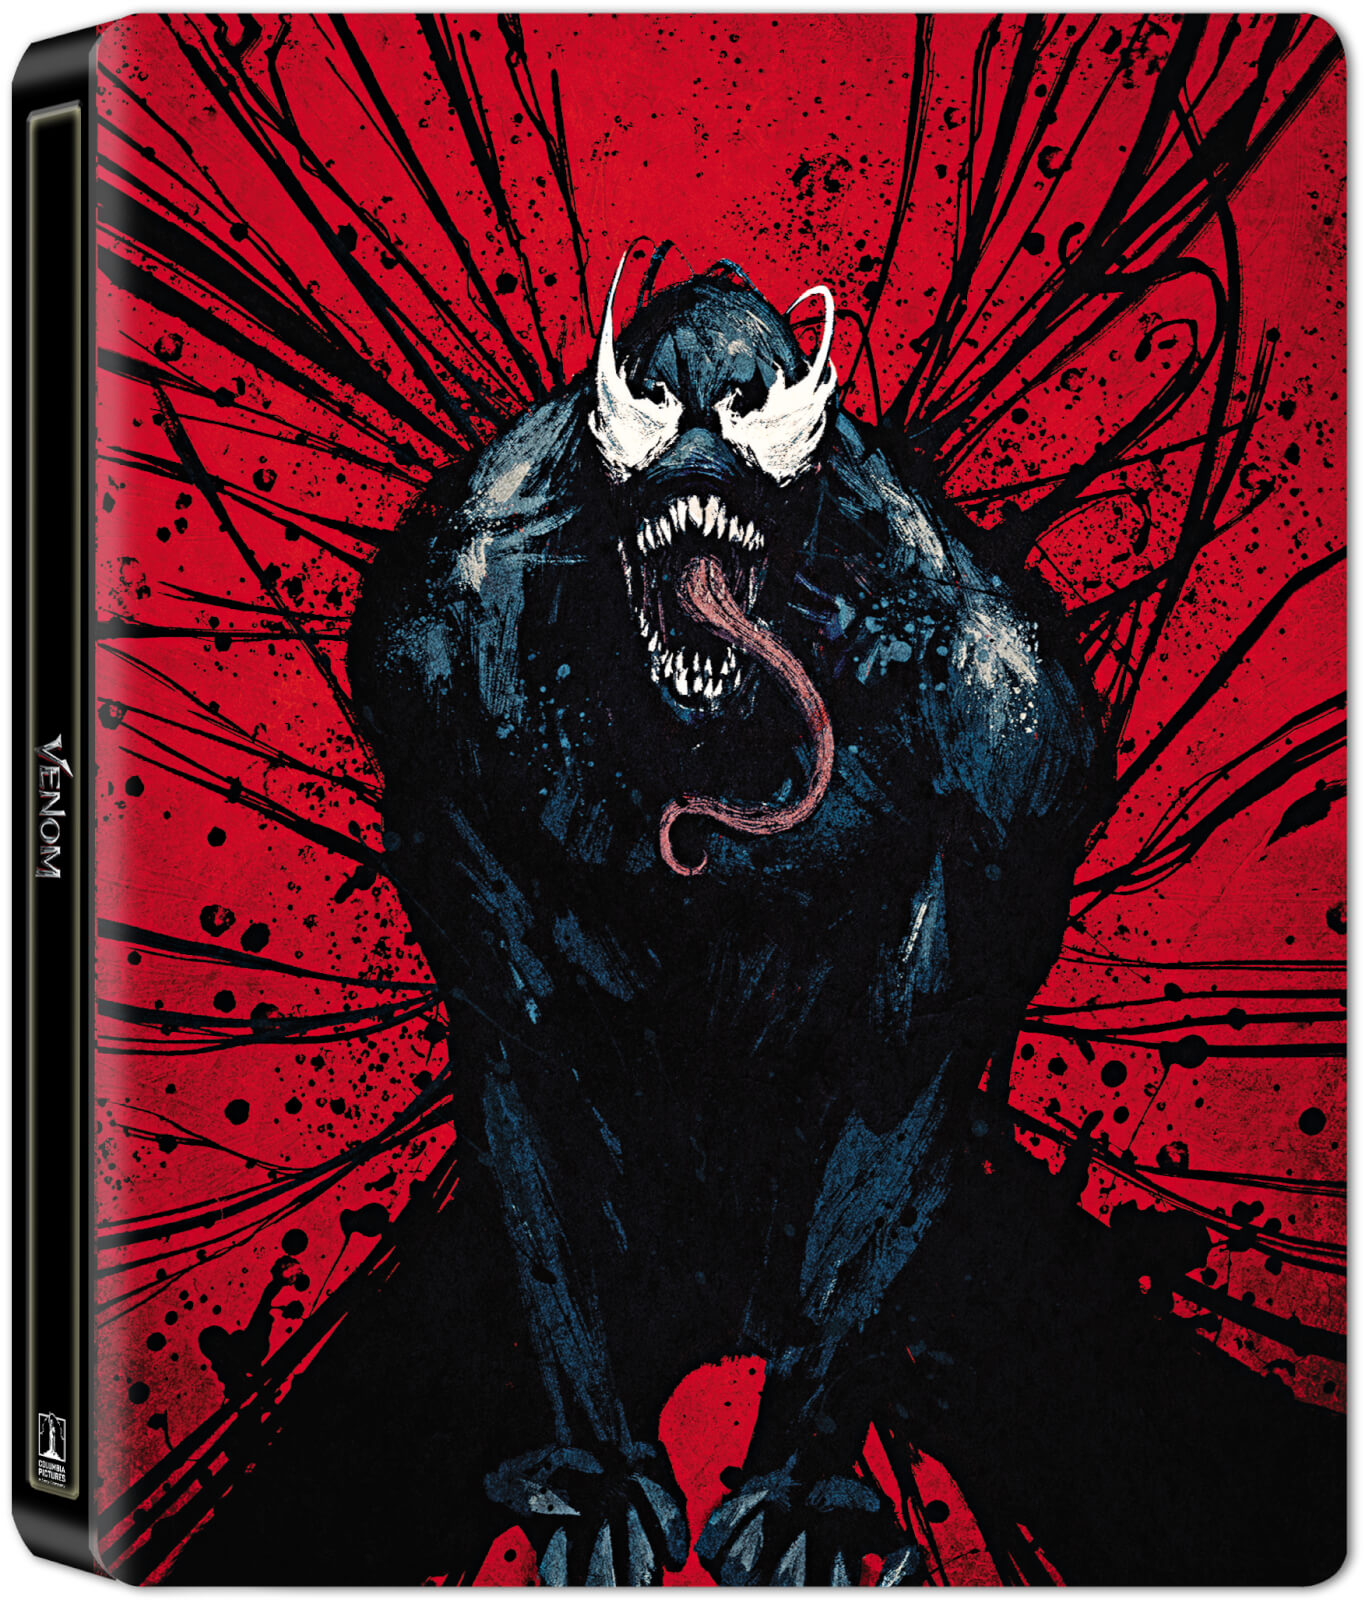 Venom UK SteelBook